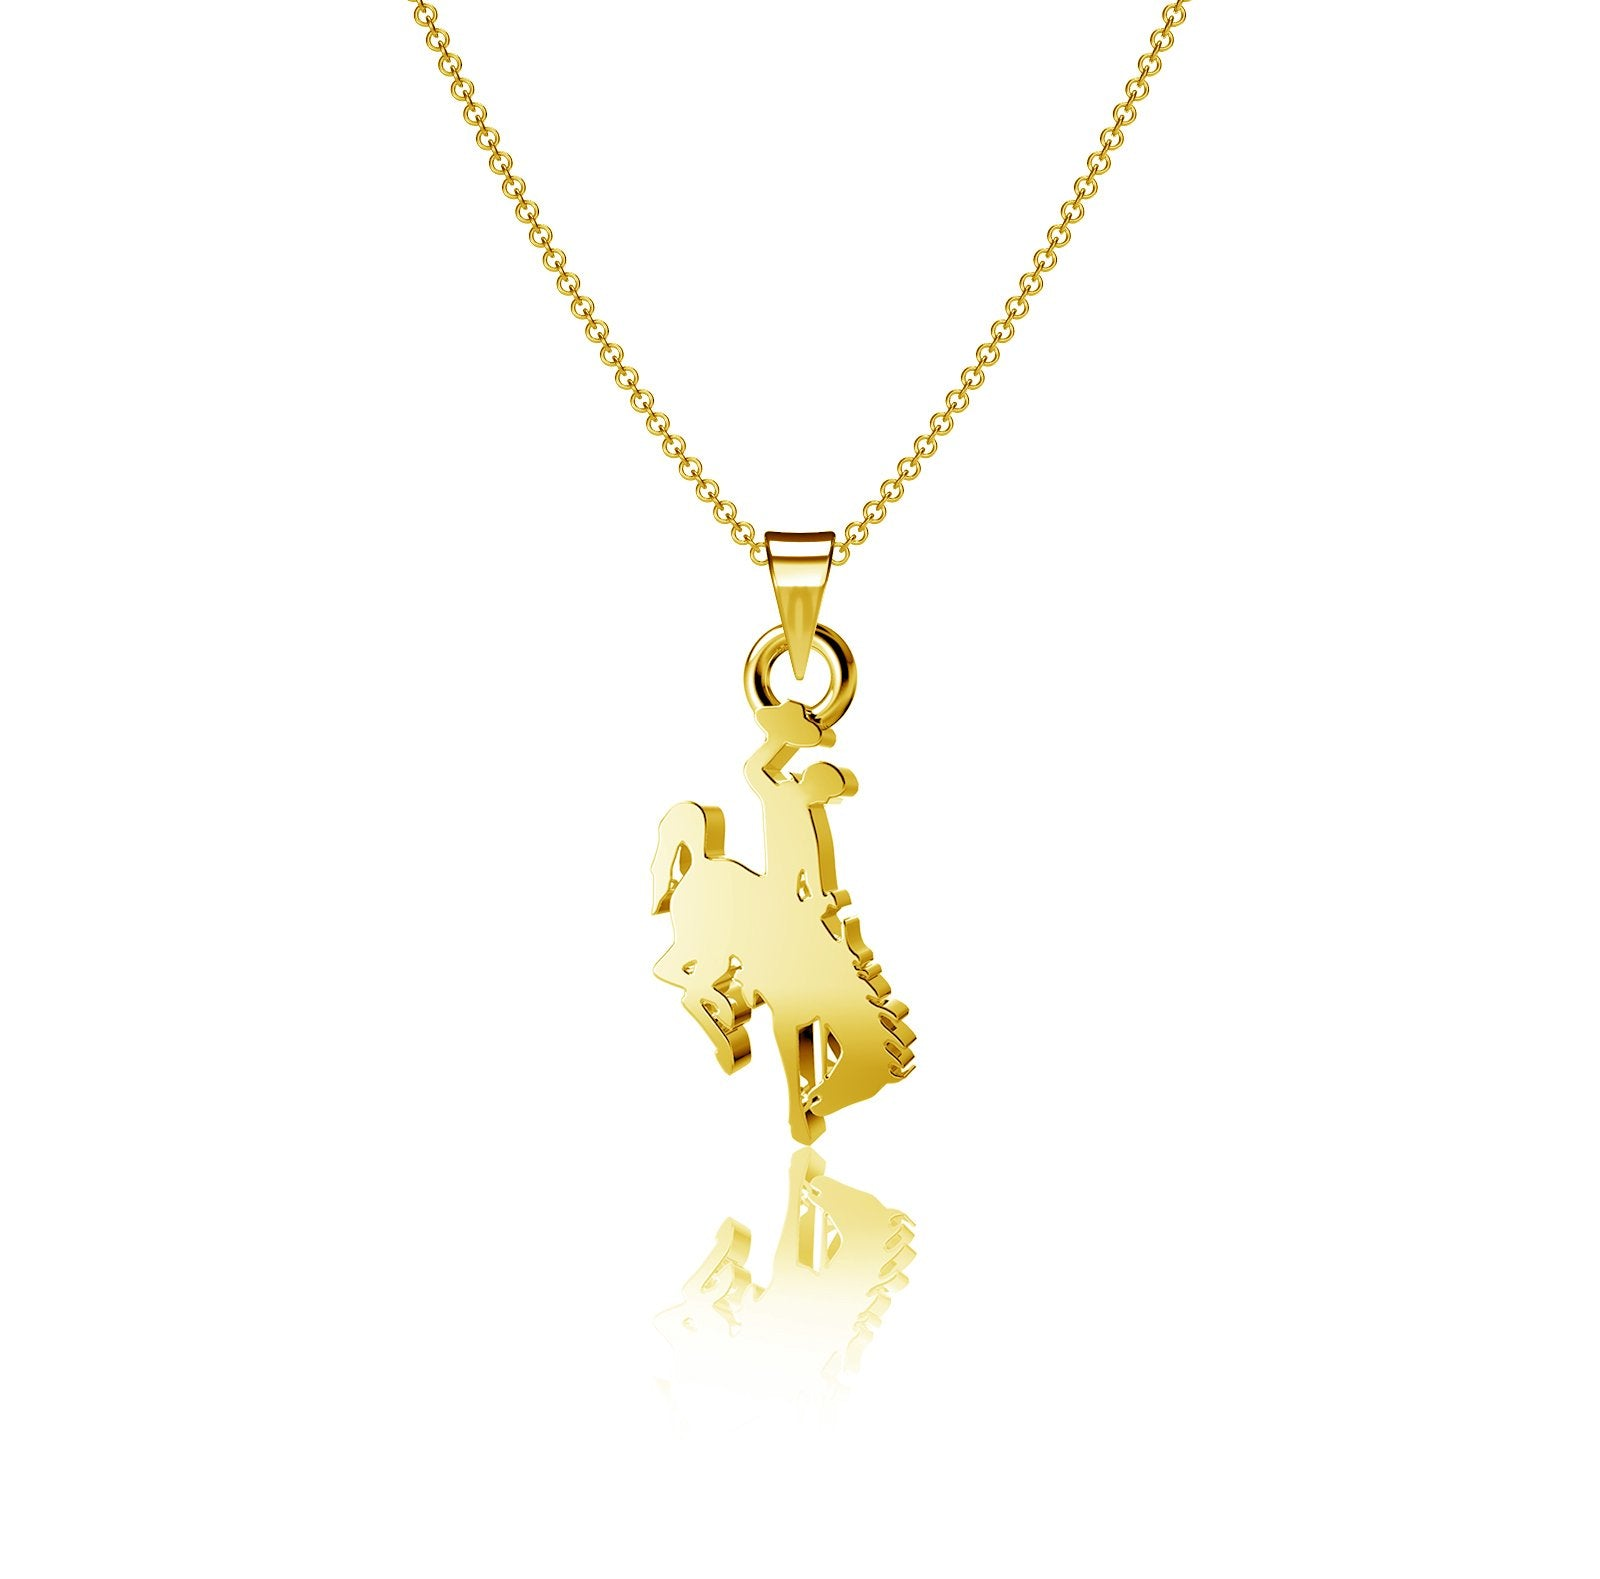 University of Wyoming Pendant Necklace - Gold Plated